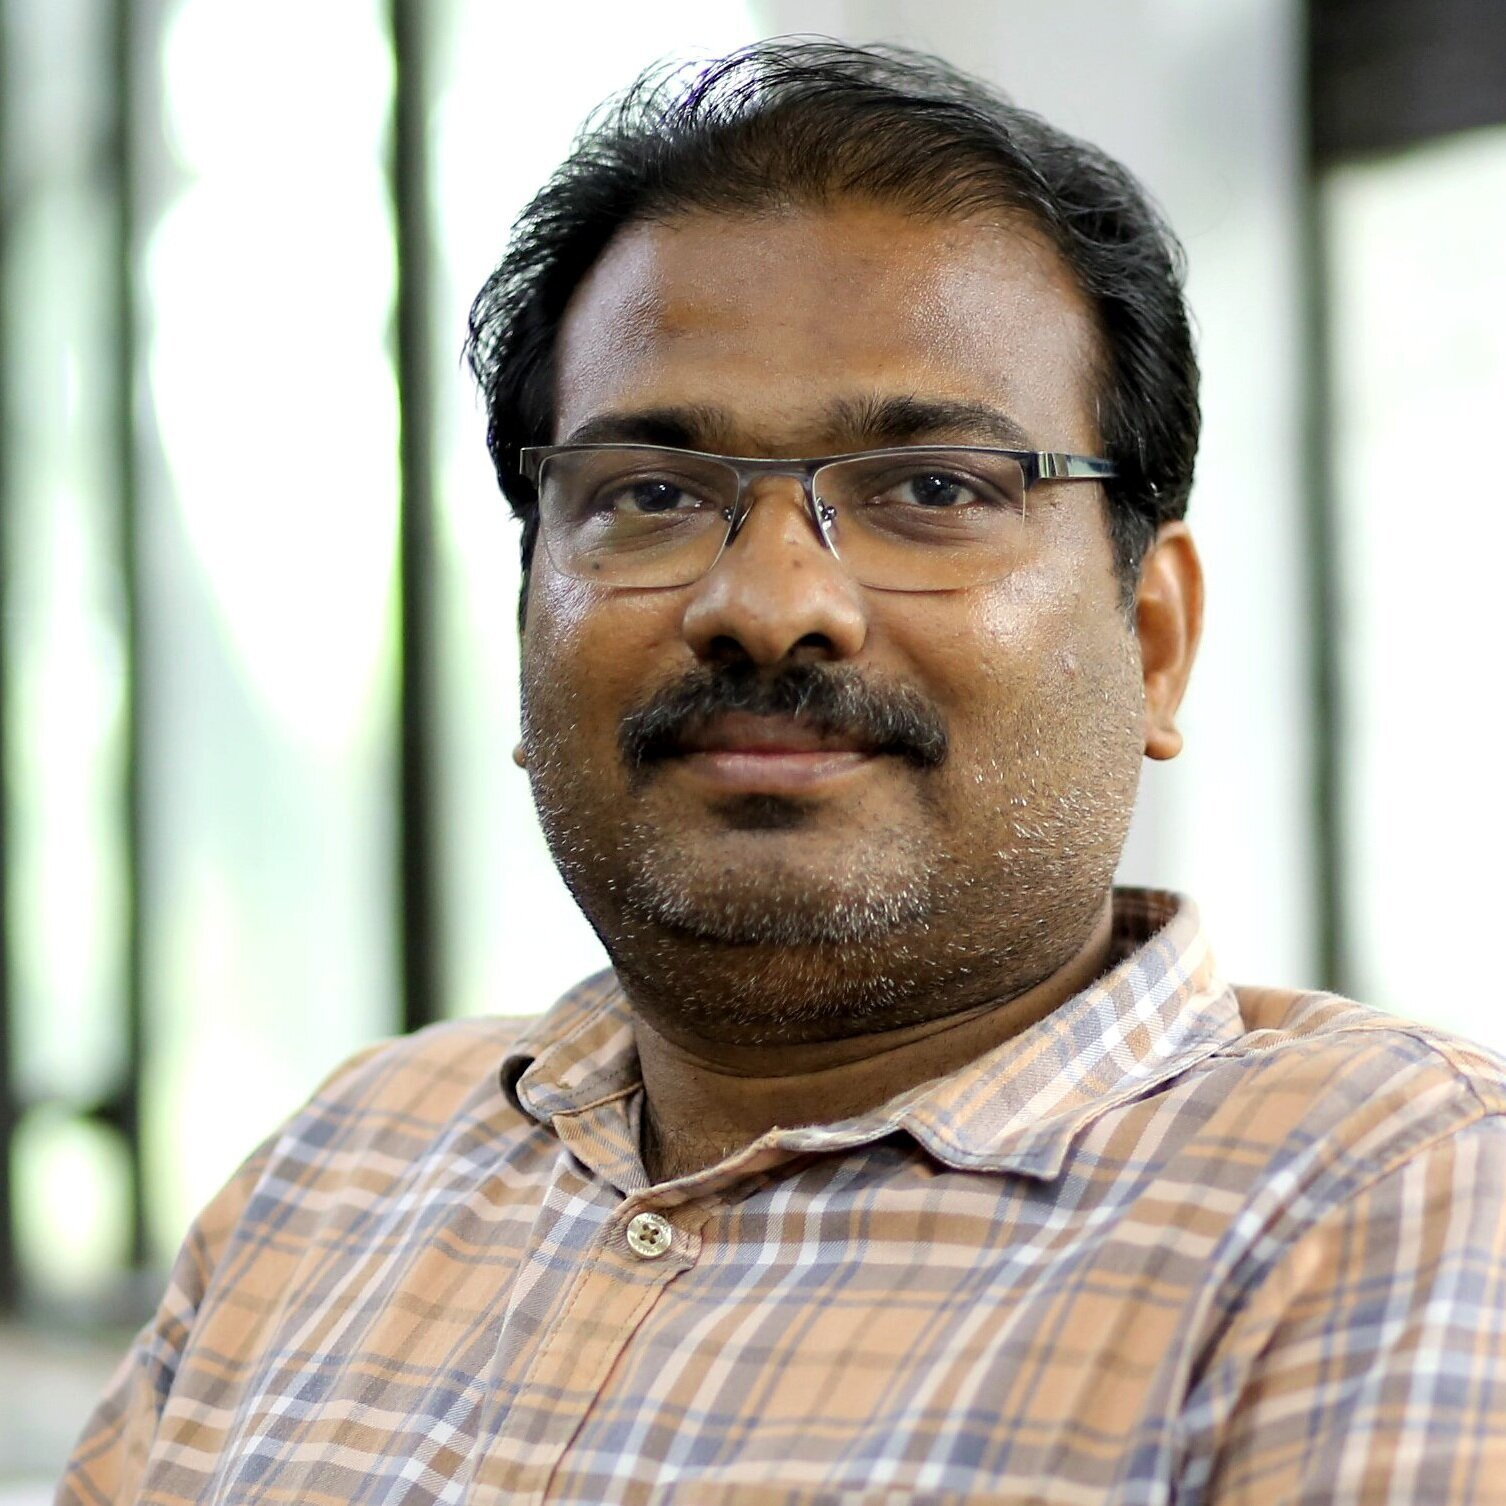 Shibu K. Nair  (Kerala, India) is a champion of Zero Waste in India, engaged in policy advocacy campaign for zero waste systems since 2000. Shibu started his career by volunteering with Thanal - environmental organization in Kerala – in 1991. He was awarded Zero Waste Fellowship by GAIA, co-hosted by Berkeley California's Ecology Center in 2002. He was awarded Saathi Fellowship (2005-12) by Association for India's Development for promotion of zero waste campaigns in India. He represented Thanal in UNEP, GAIA network and Break Free From Plastic movement. He is a member of Zero Waste International Alliance. He is engaged in providing technical support to communities, Local Governments, Cities and State Governments on zero waste systems. He is one of the mentors of Green Army - a platform of youth and students for zero waste and engaged in campaigns against single use plastics in Kerala. He was Programme Director – Zero Waste and Climate Action at Thanal till March 2019 and is now working as a freelance consultant on zero waste. Shibu lives in Kollam with his wife Manjusha and son Neeraj.